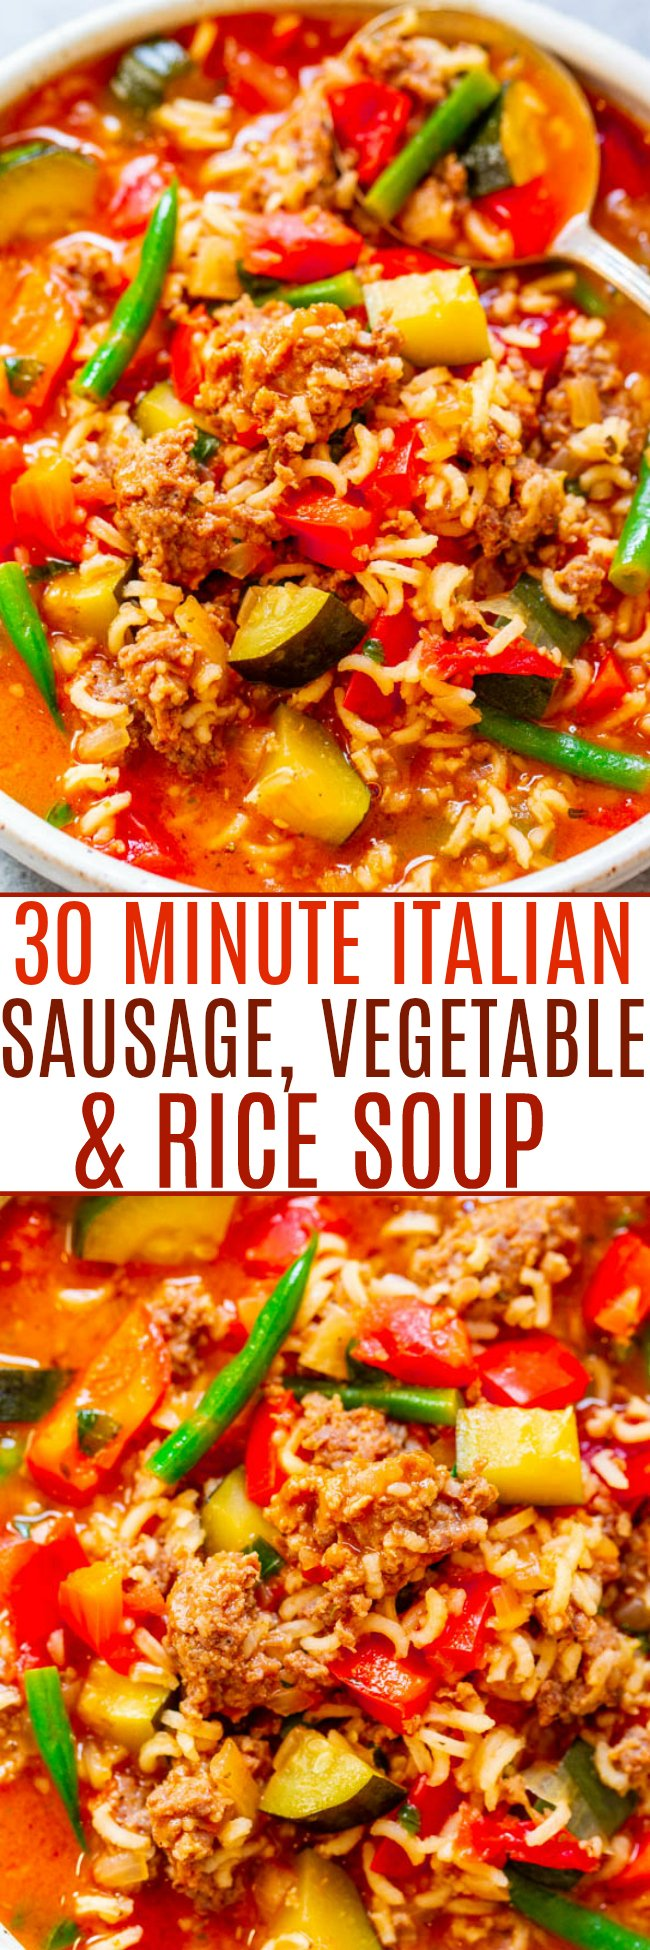 30-Minute Italian Sausage, Vegetable, and Rice Soup - EASY, hearty soup that's full of flavor from the sausage, rice, and vegetables!! Comfort food the whole family will LOVE and it's healthier from the vegetables! It keeps you warm and cozy on cold winter nights!!